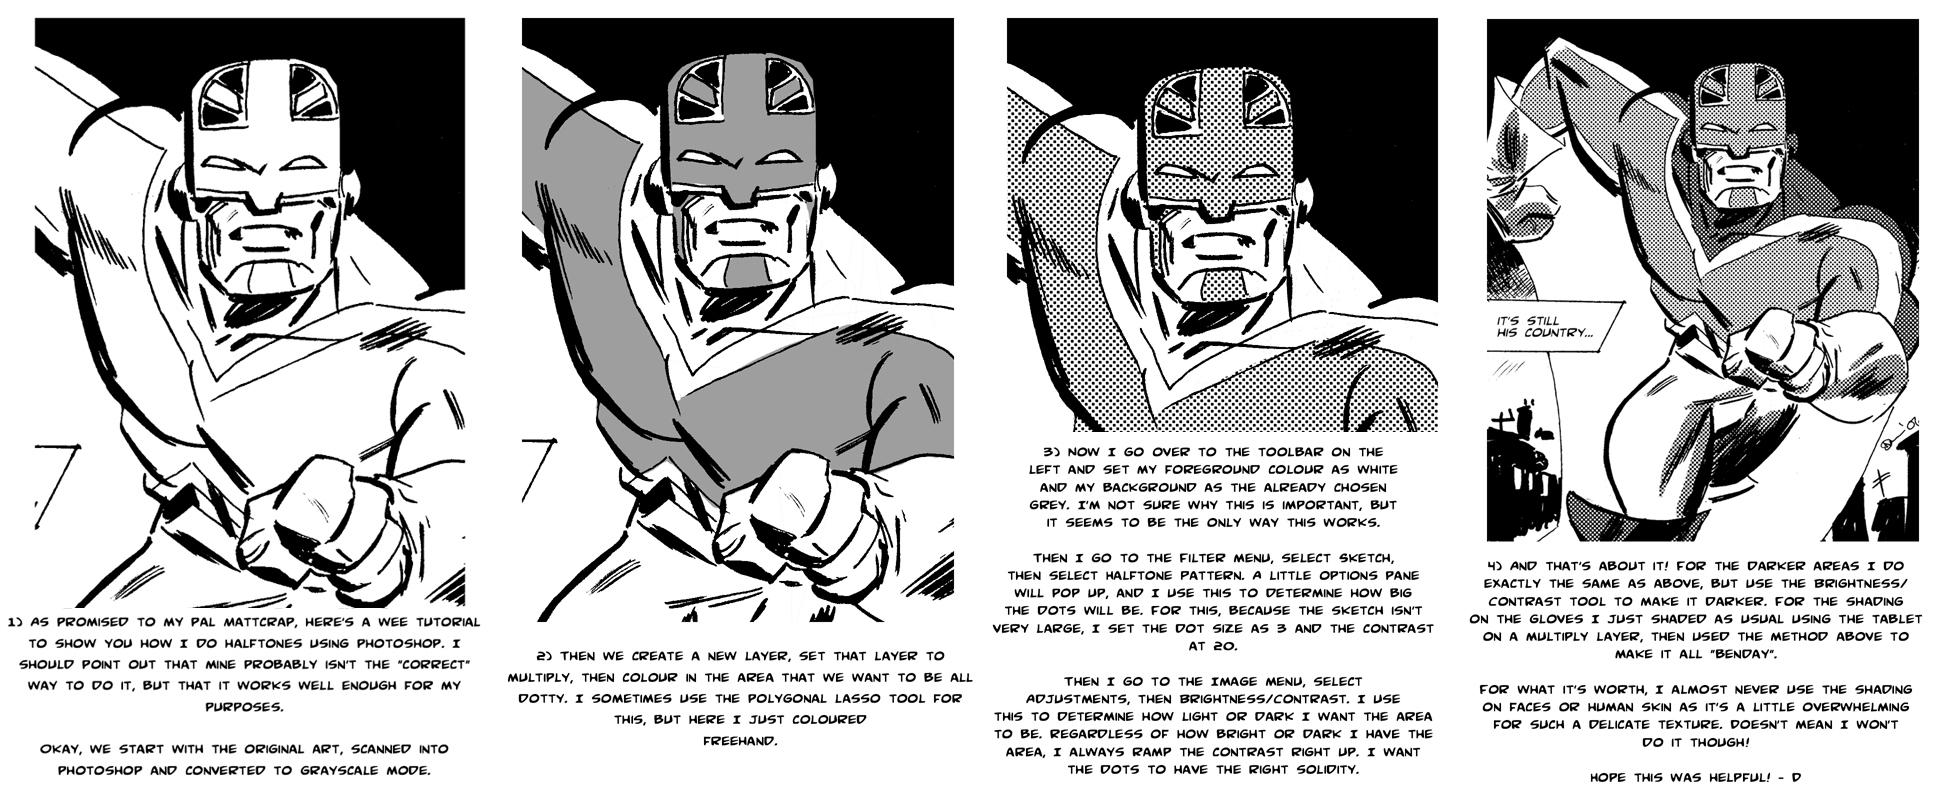 Halftone Vs Dithered Shading